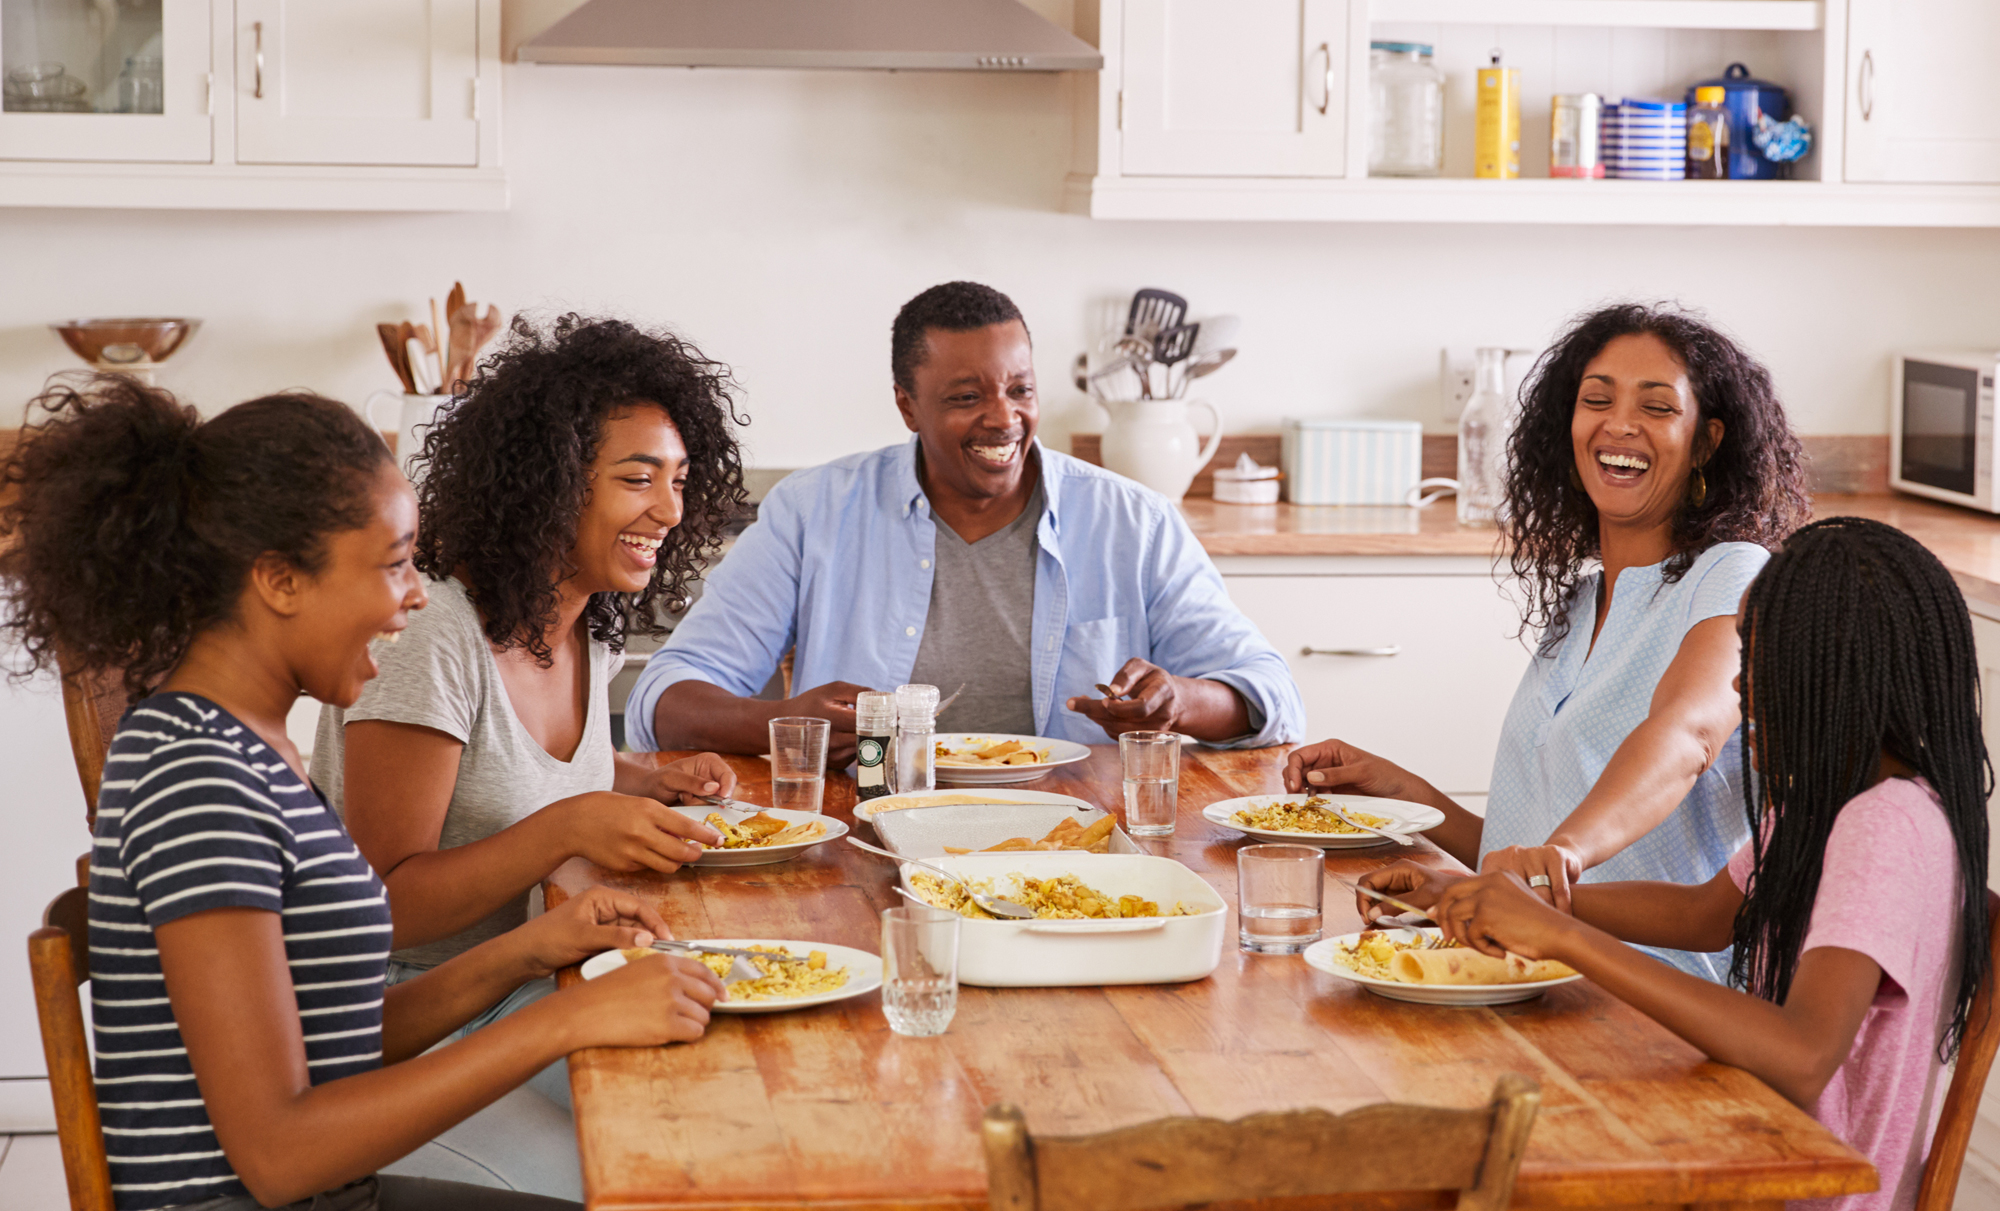 a laughing family eating dinner around a wooden table